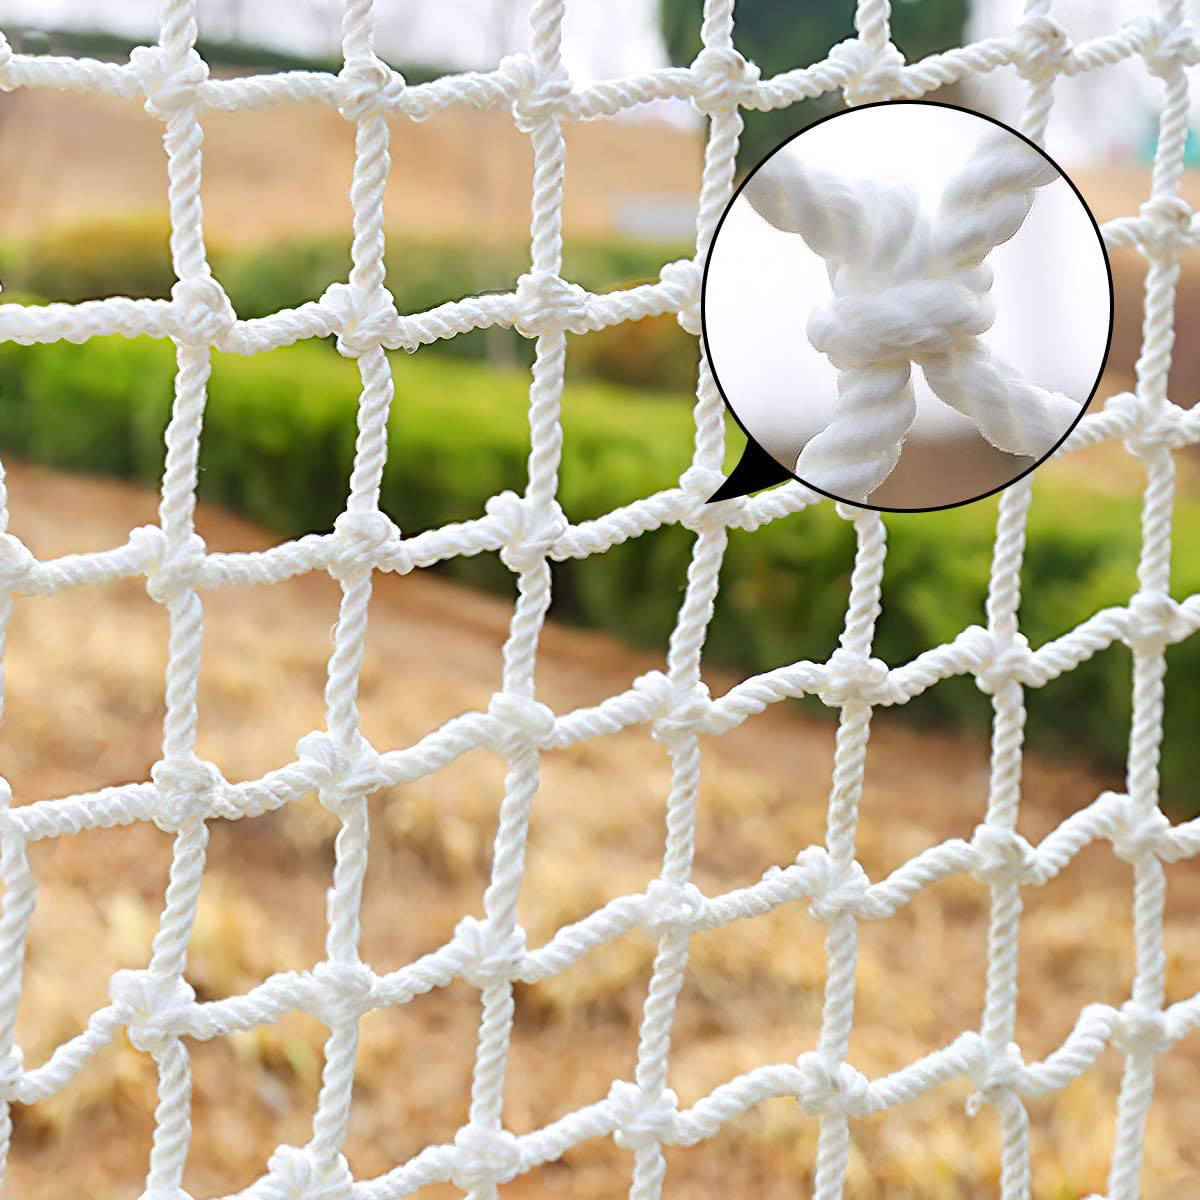 Solid Nylon Railing Stairs Netting Children Safety Net Building Anti-Falling Safety Net Balcony Security Guards for Kids Pet